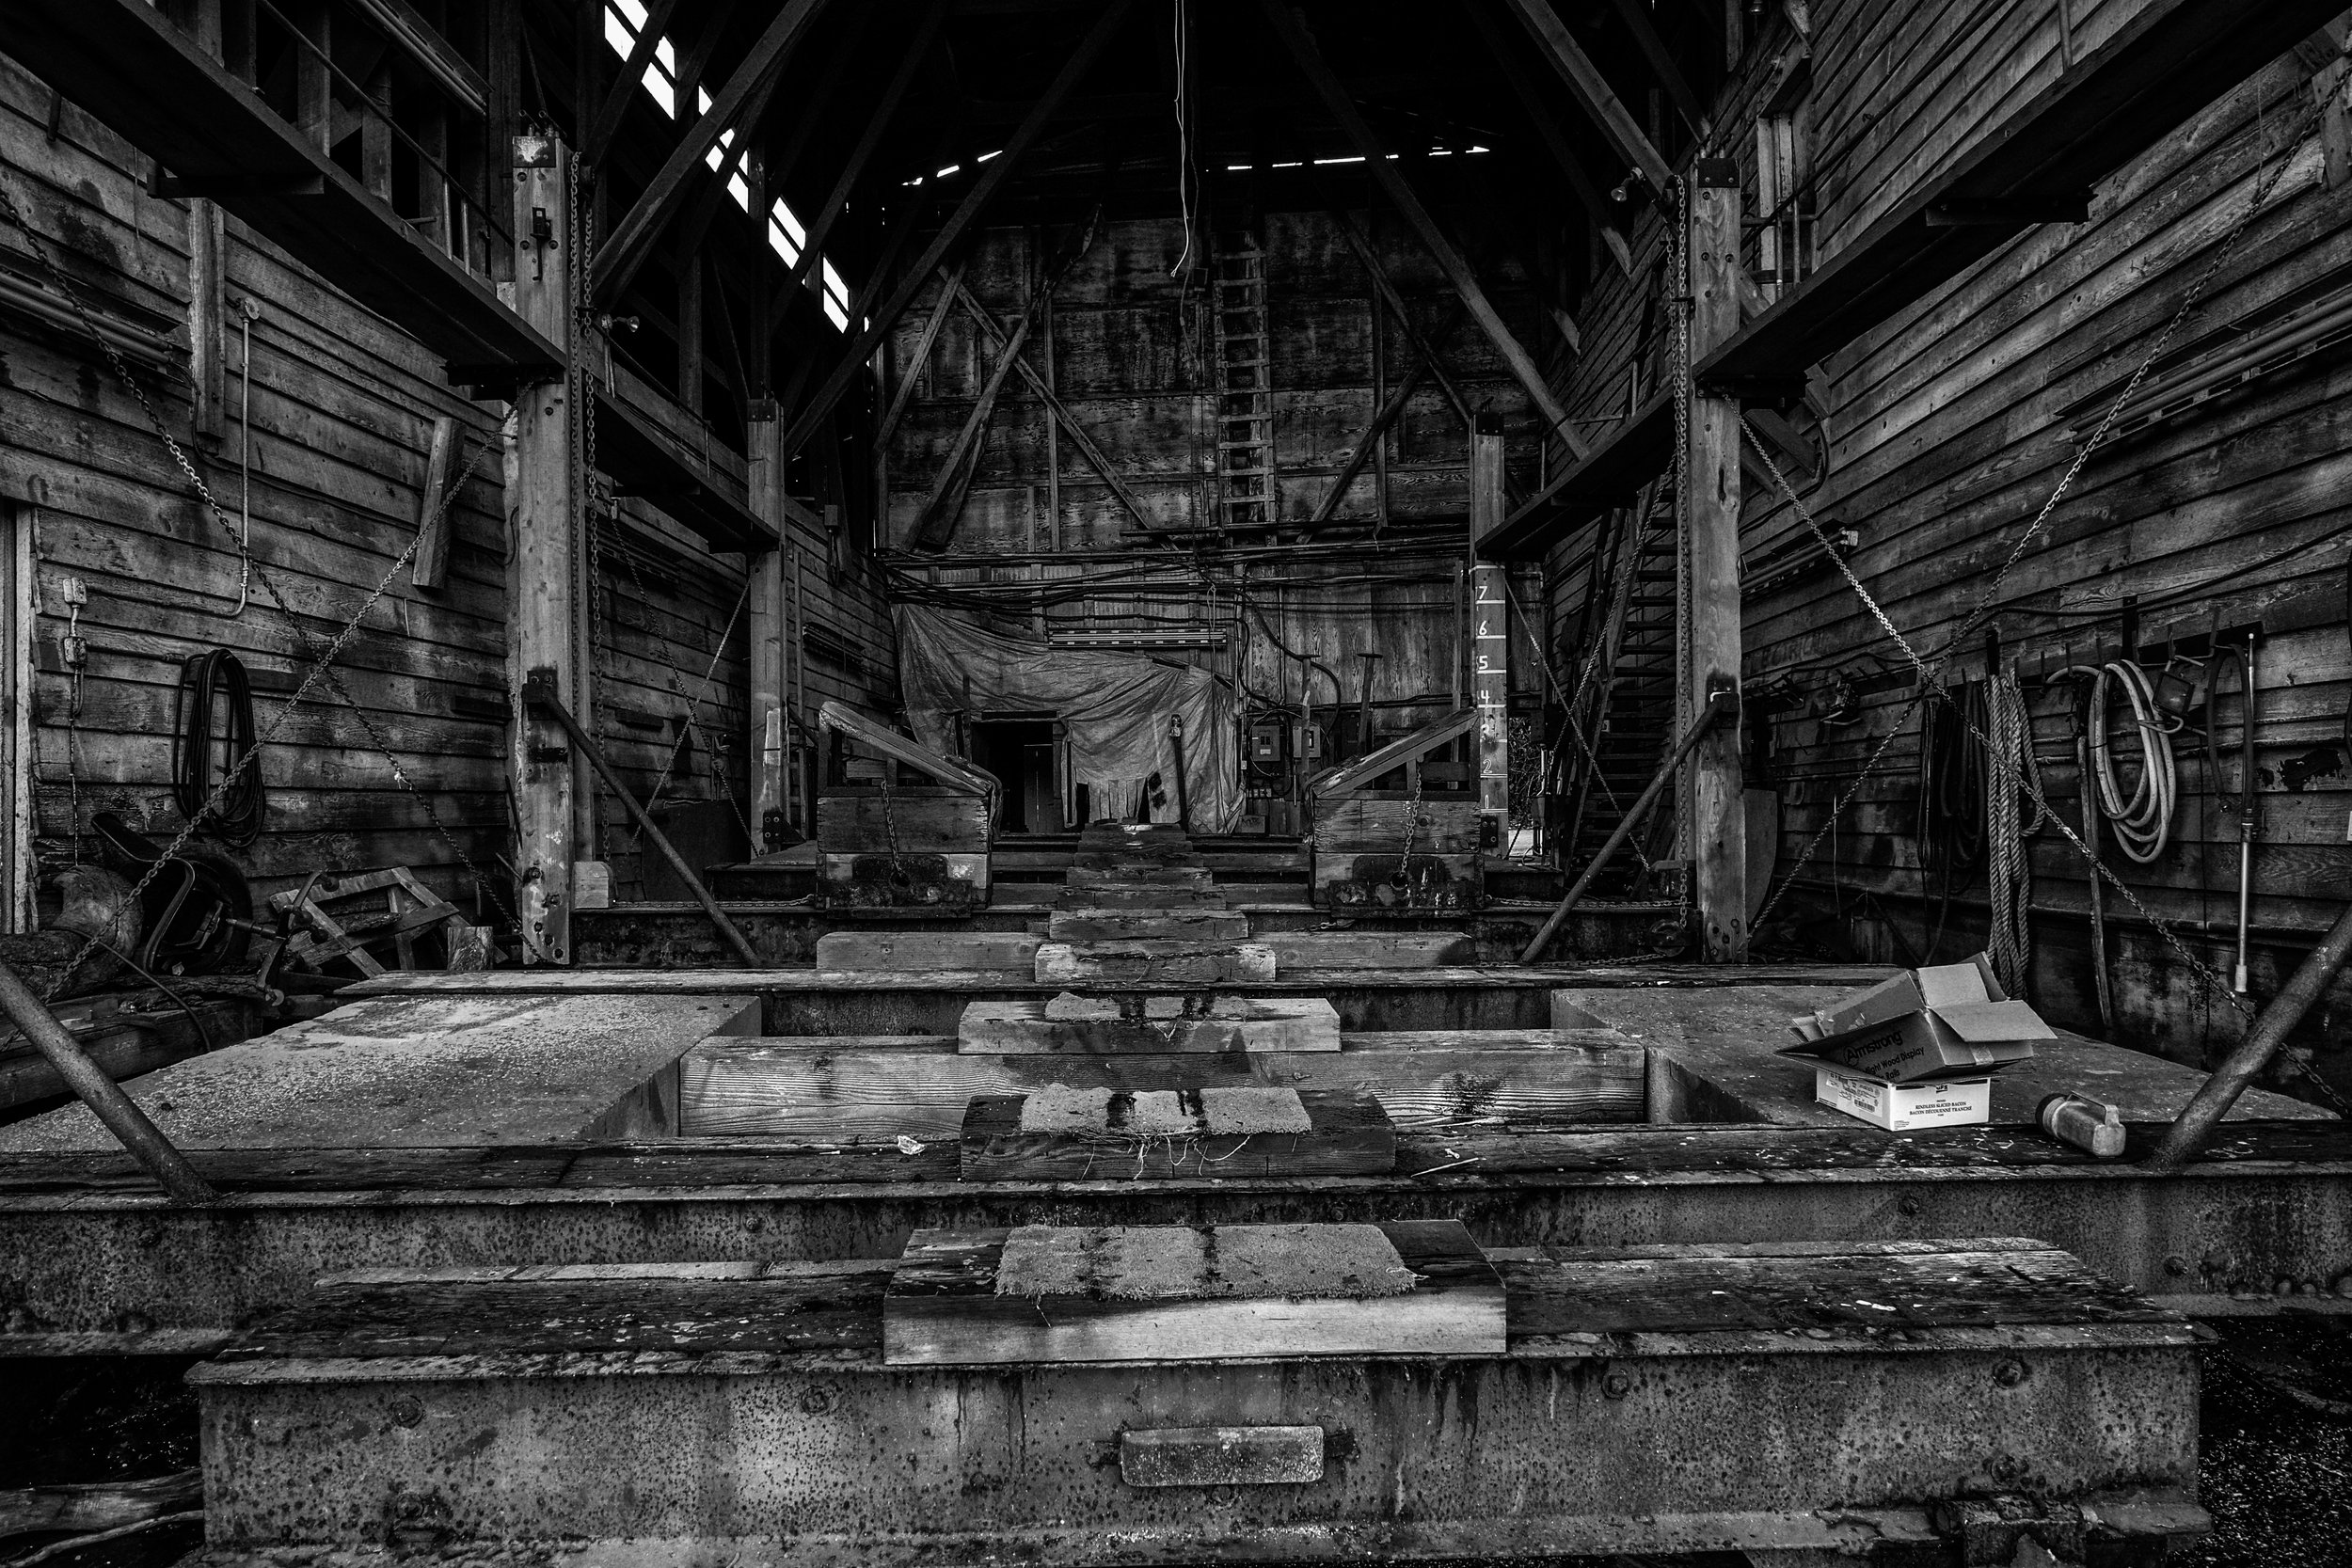 2014-12-25 at 15-55-13 Architecture, Black & White, Boat, Dry Dock, Marine, Ocean, Seascape, Street Life.jpg